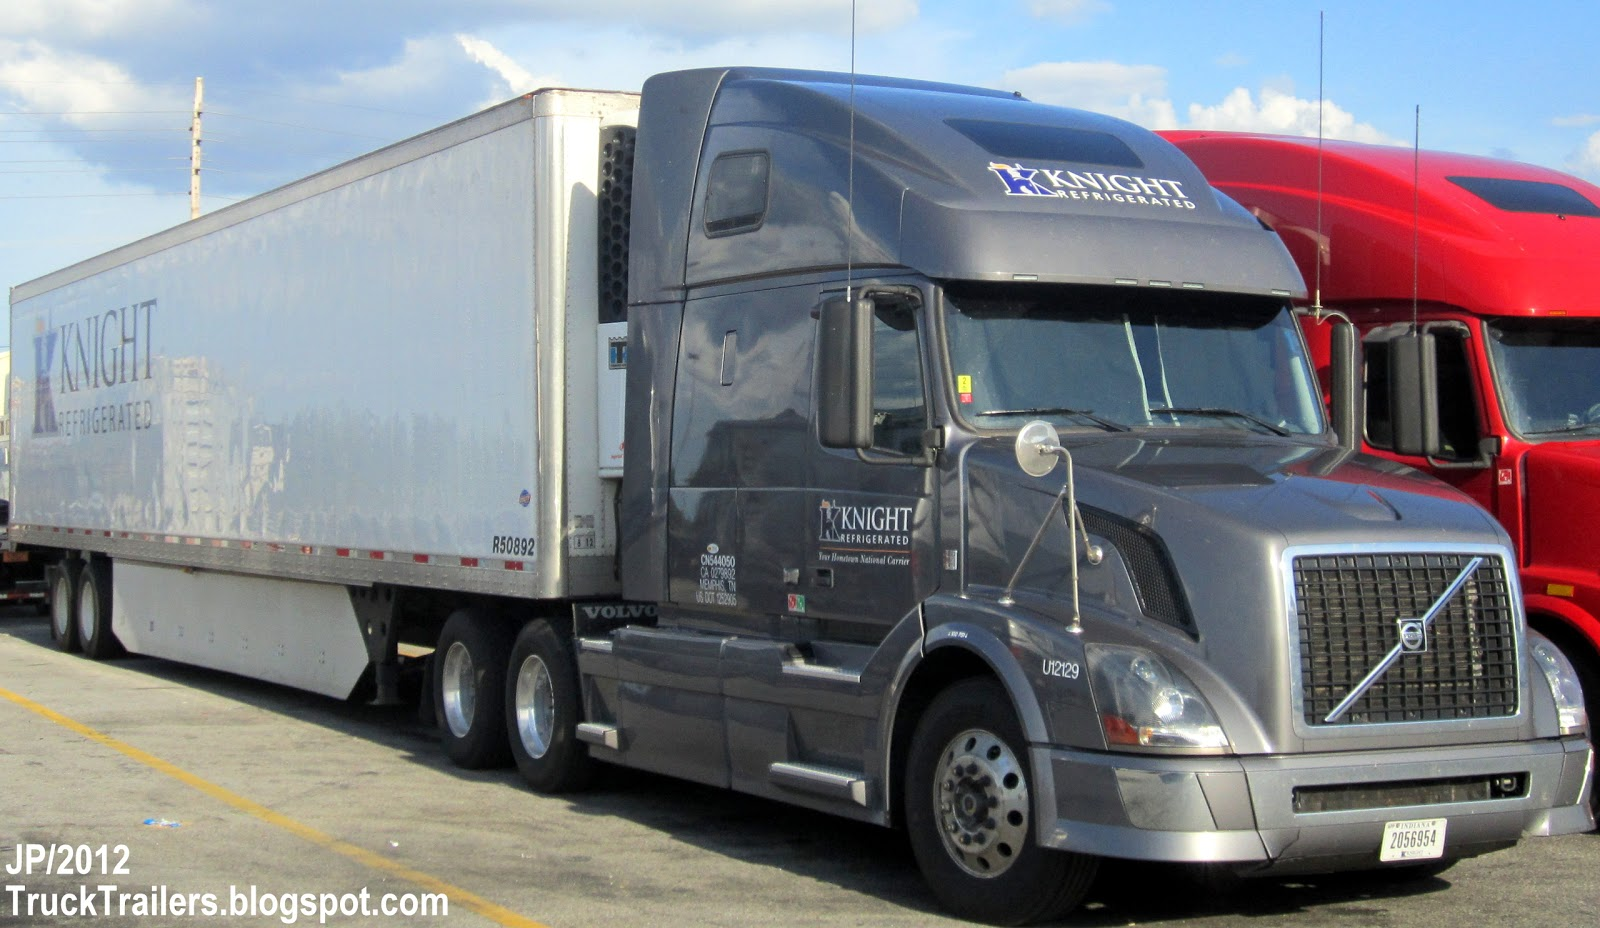 Knight refrigerated truck trailer knight refrigerated trucking memphis division cold food truck olive branch mississippi